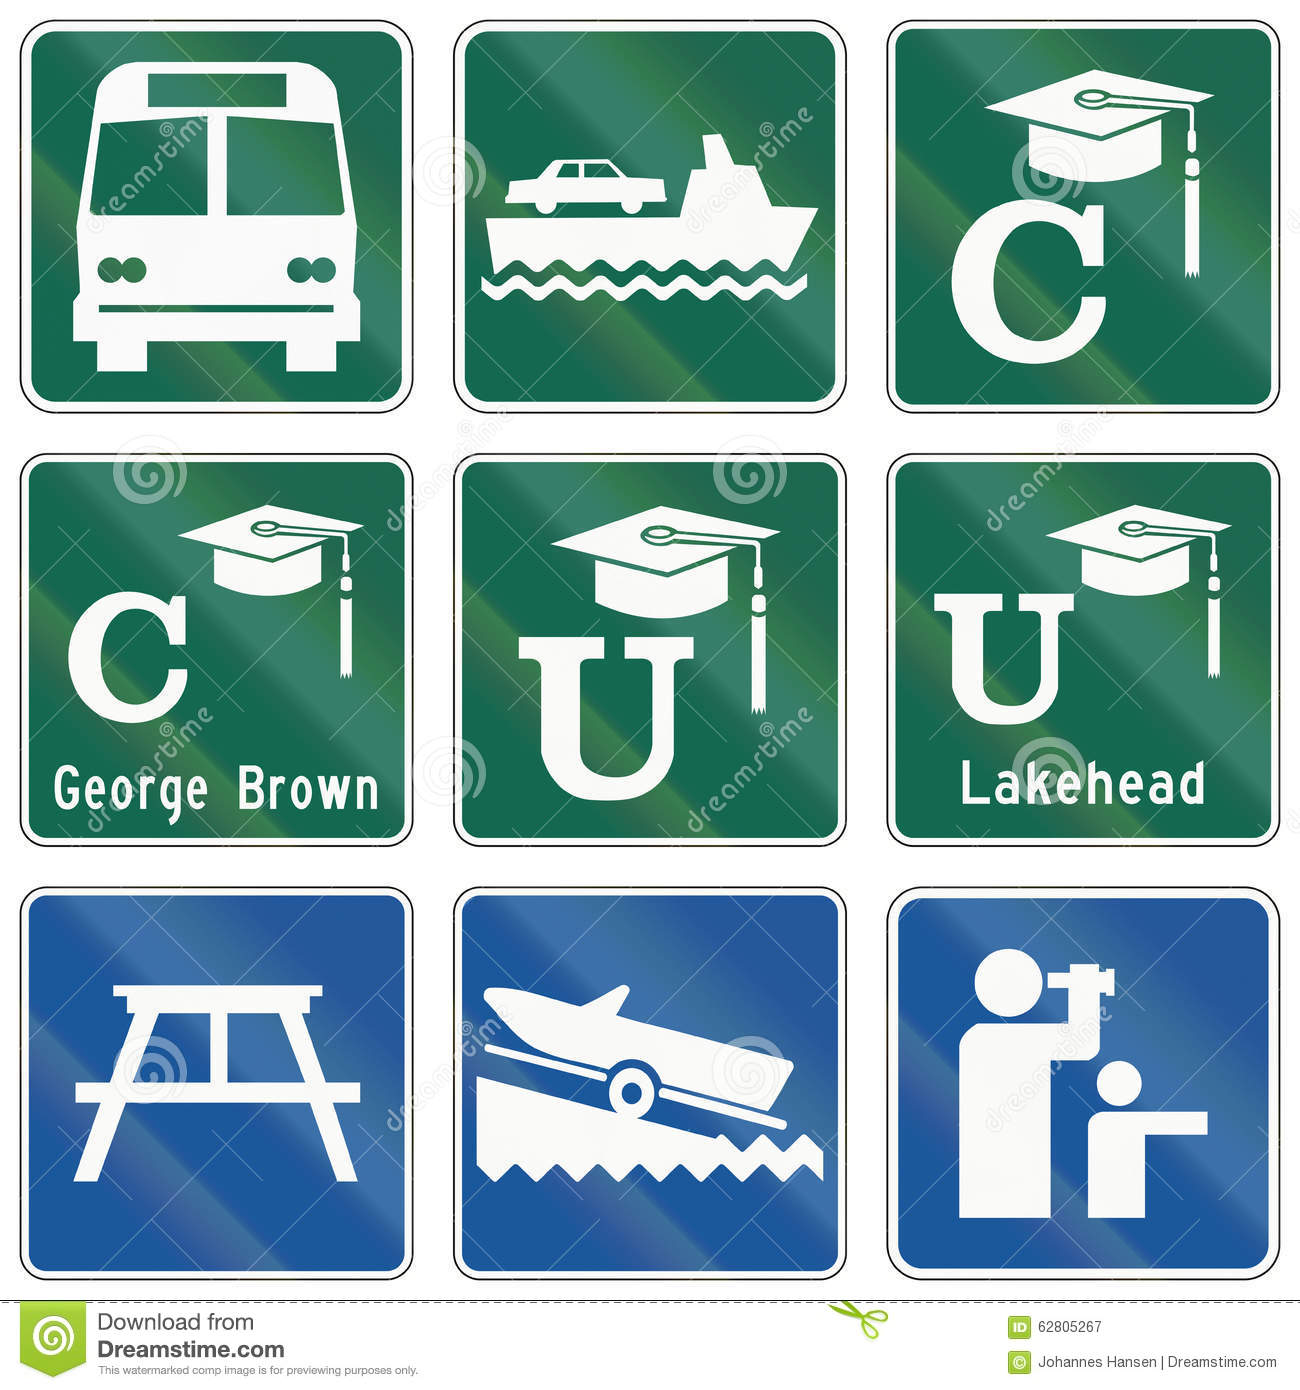 Guide Road Signs In Ontario - Canada Stock Illustration ...